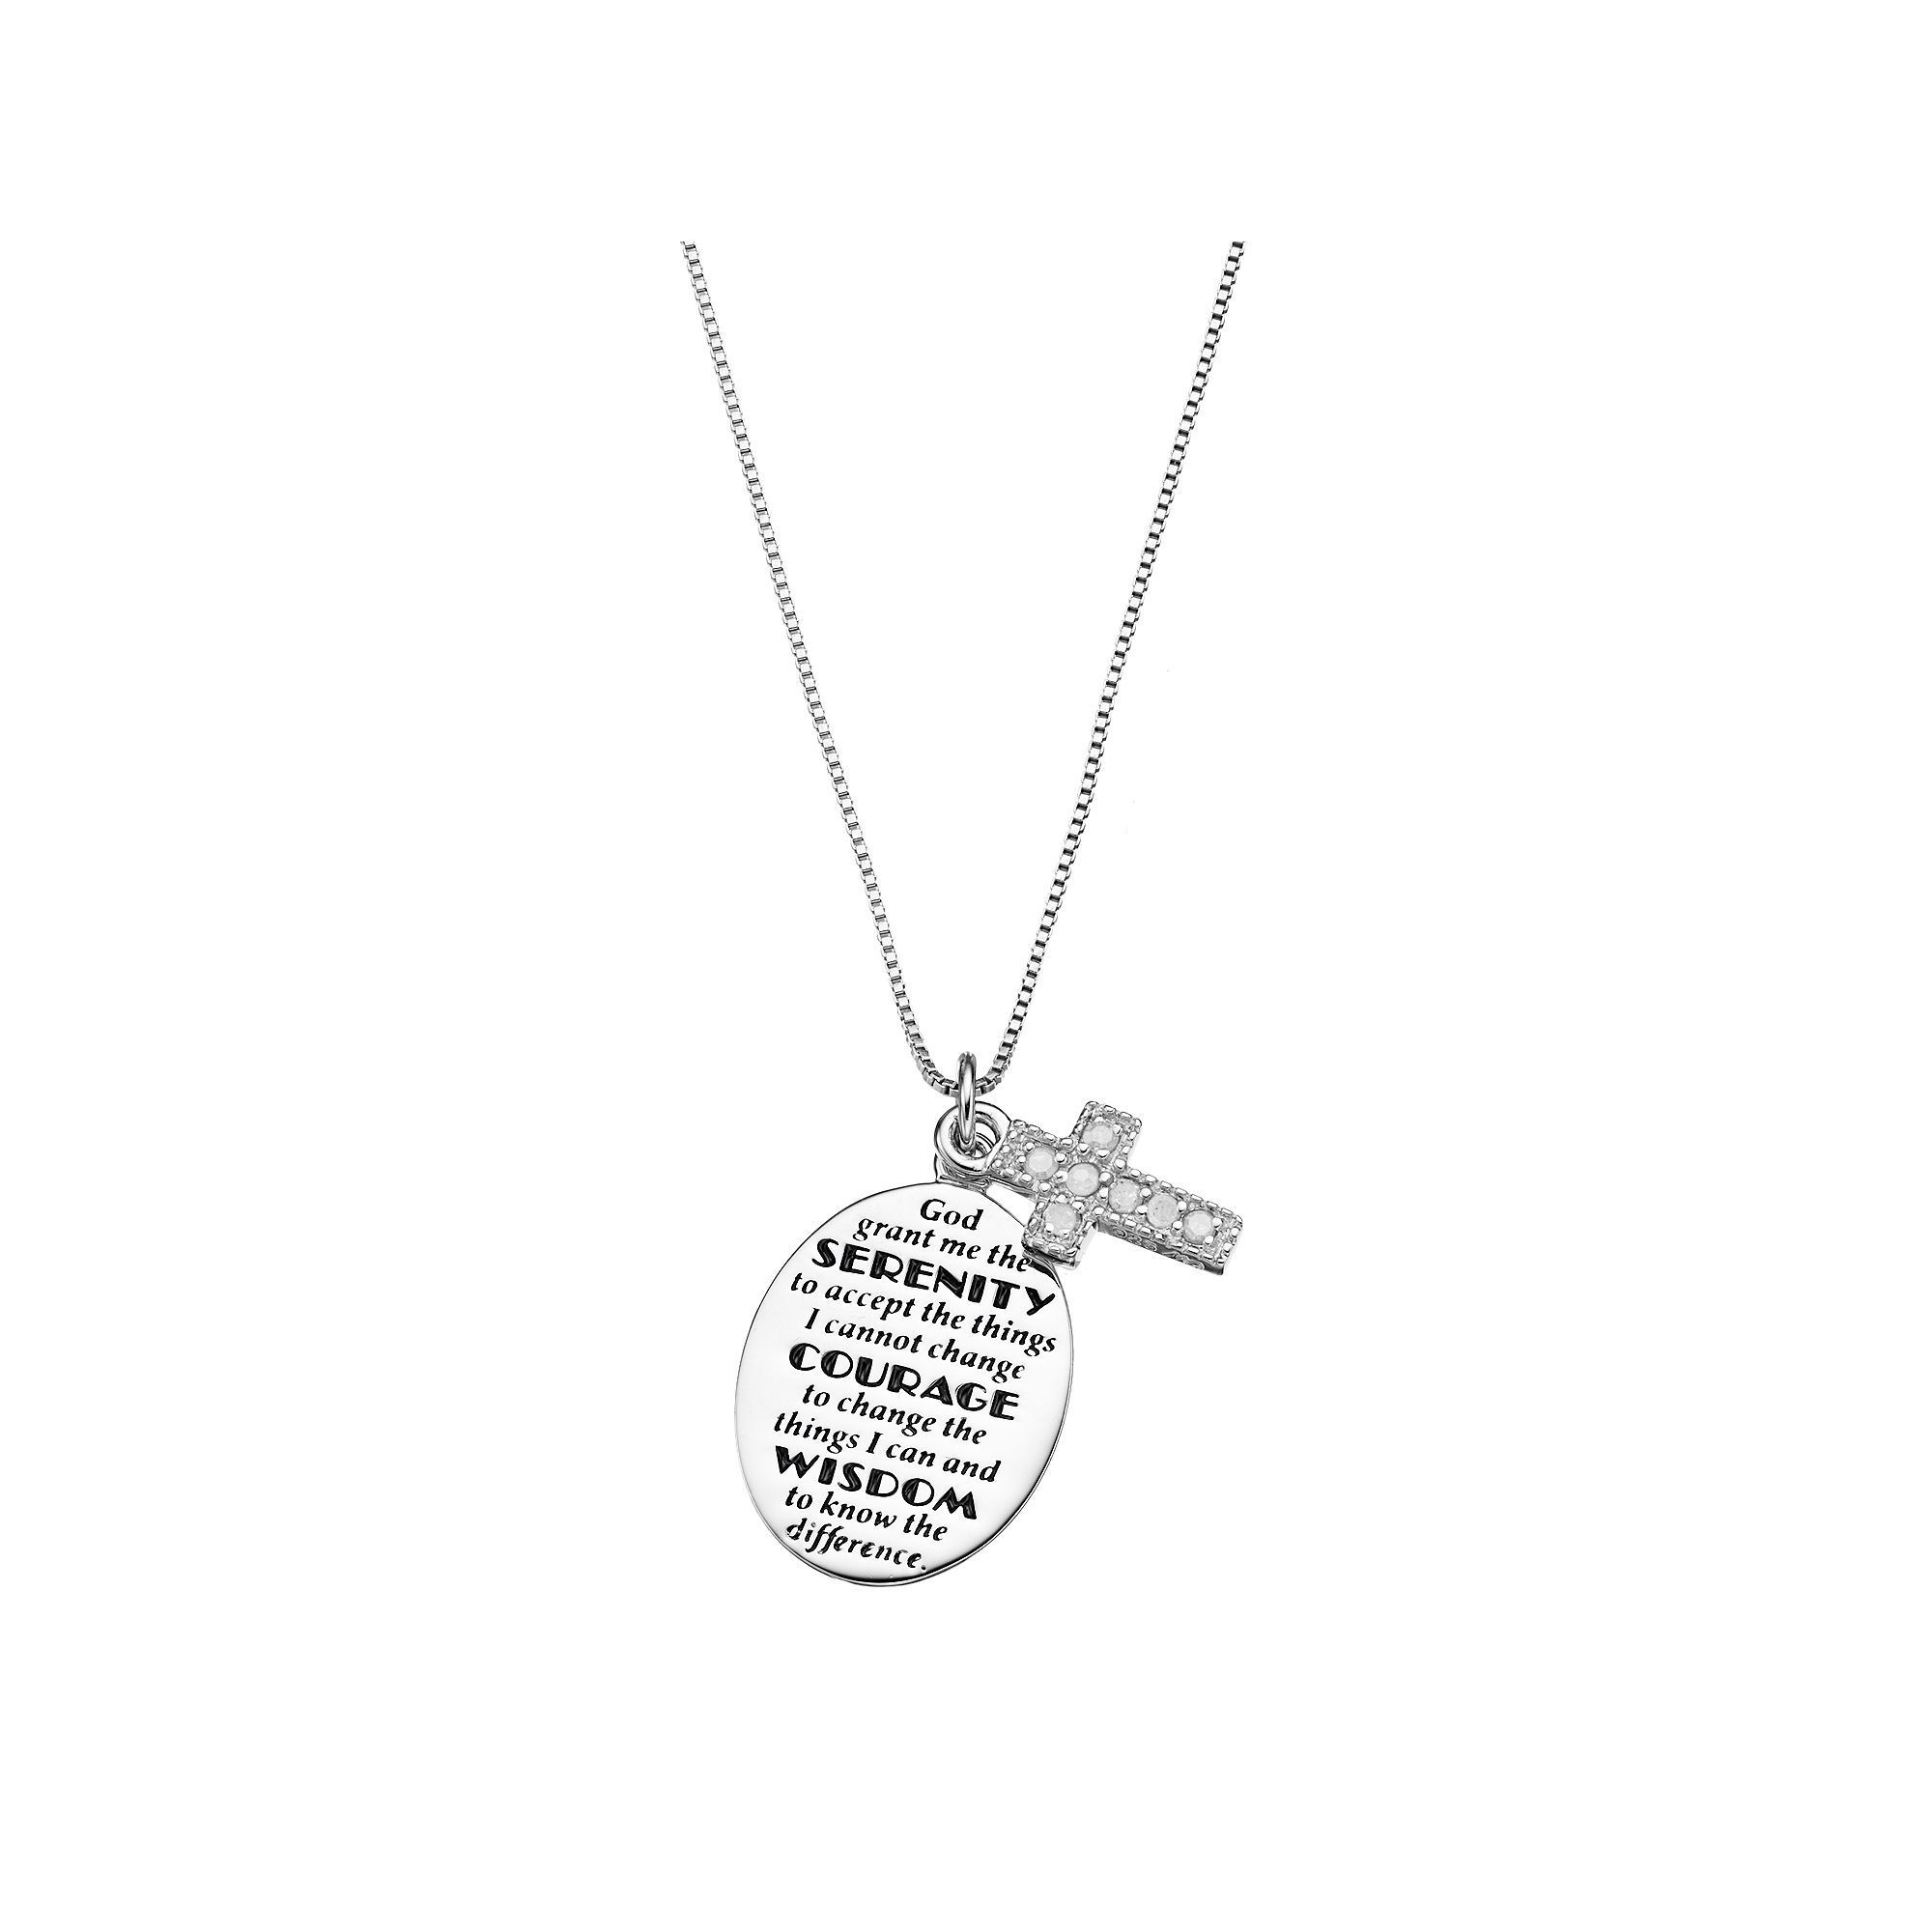 prayer serenity heart magnifier necklace pendants pendant